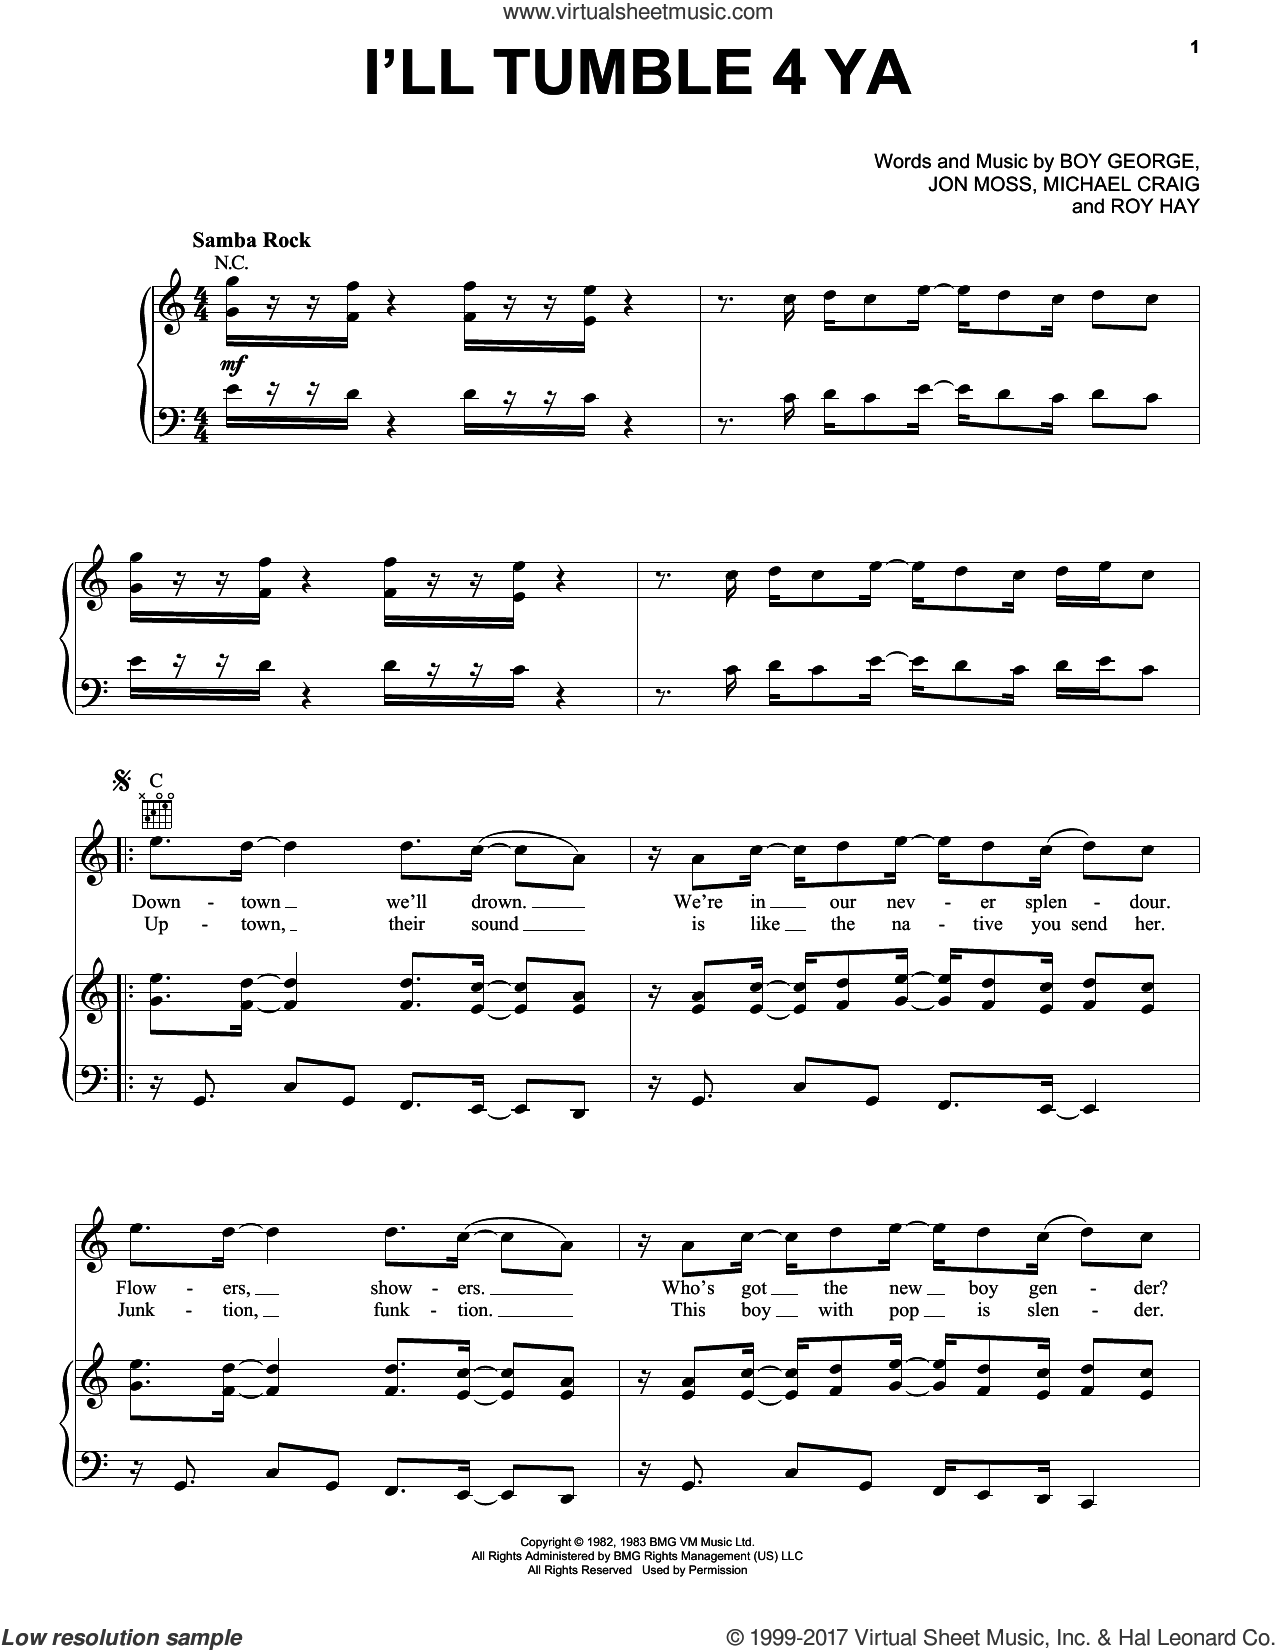 I'll Tumble 4 Ya sheet music for voice, piano or guitar by Culture Club, Boy George, Jon Moss, Michael Craig and Roy Hay, intermediate skill level